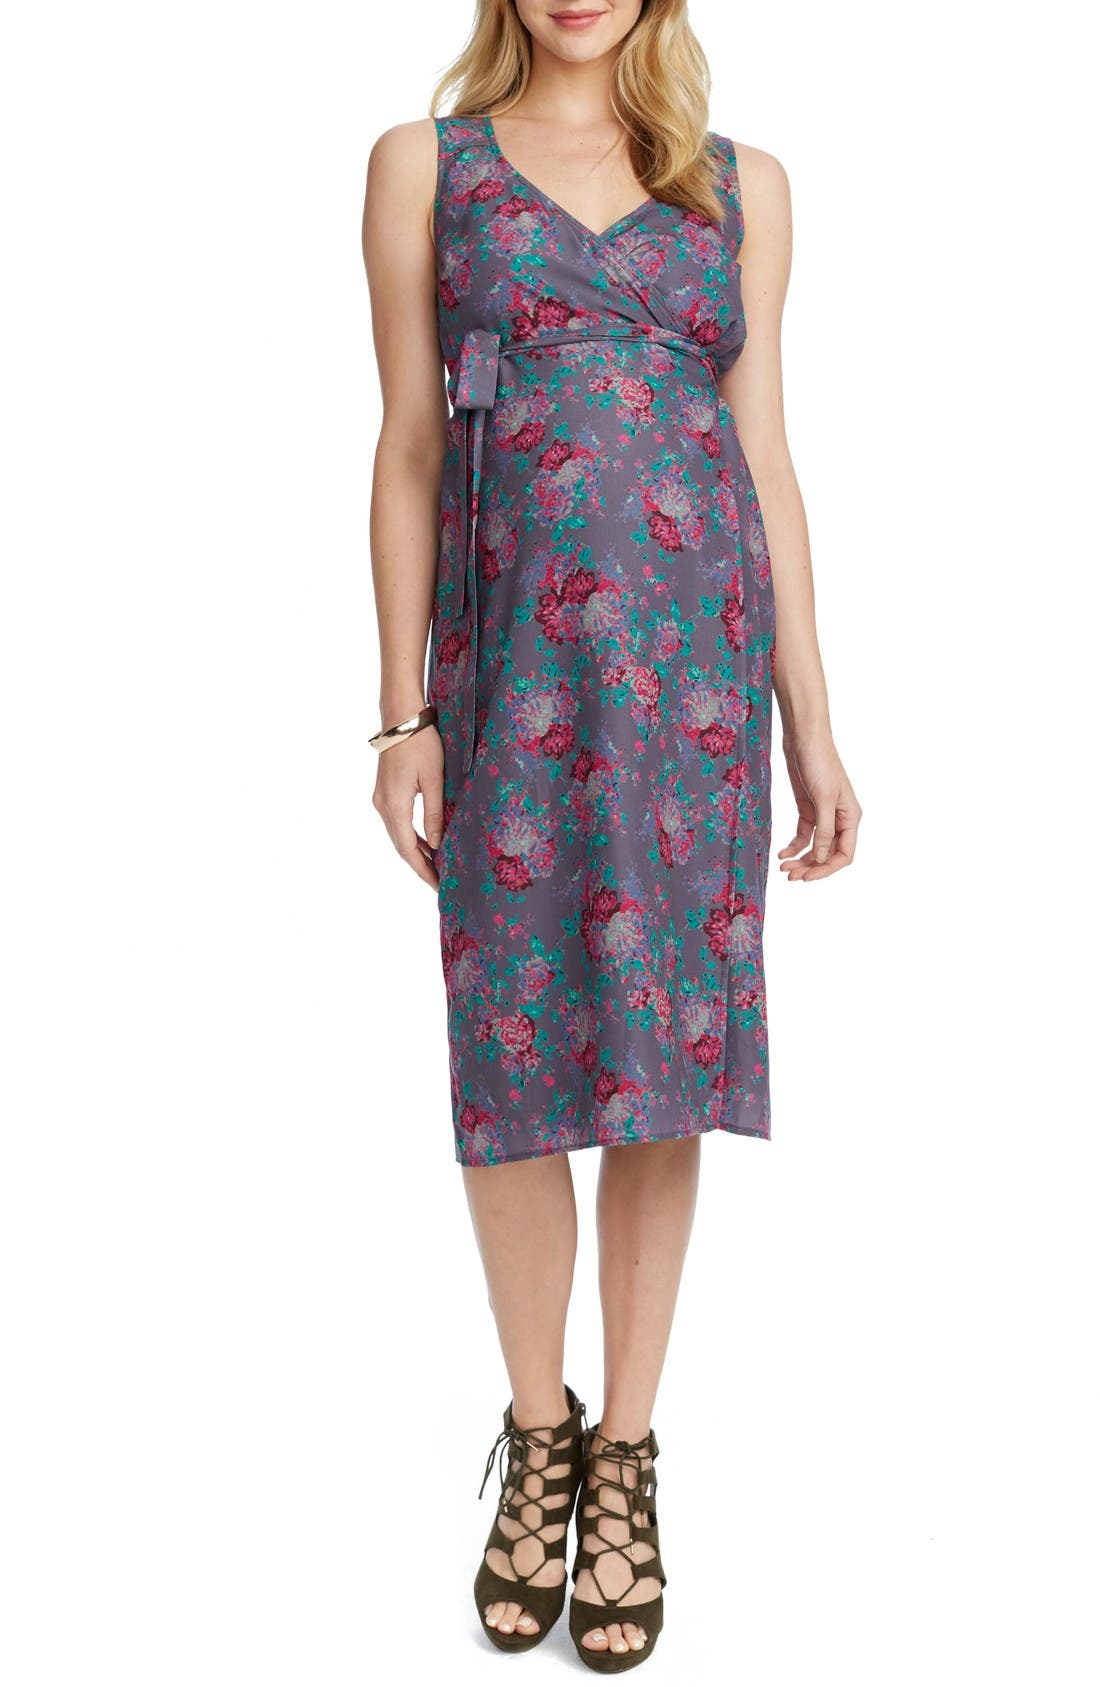 Rosie Pope Tara Floral Maternity/Nursing Wrap Dress